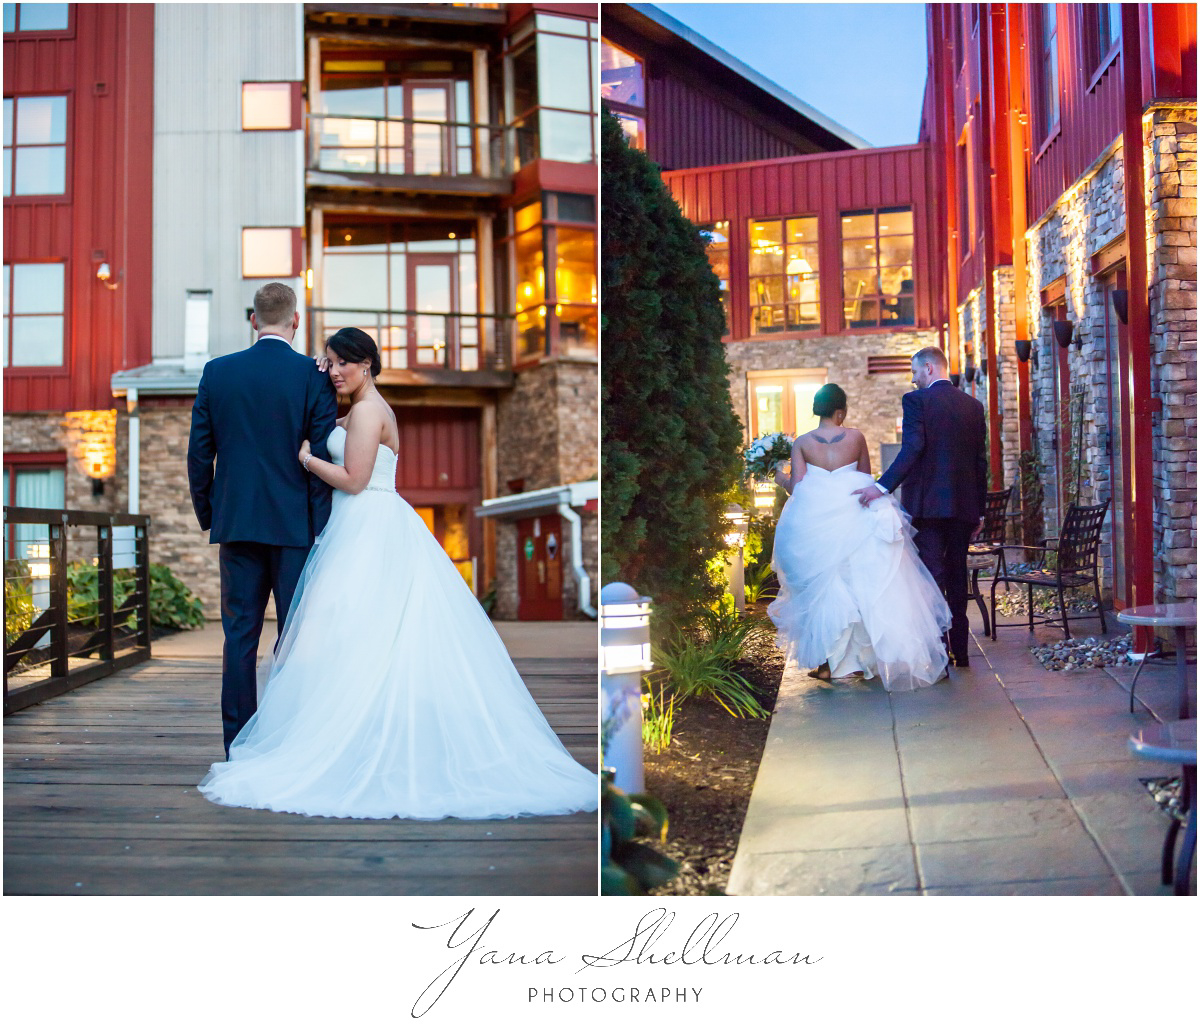 Bear Creek Mountain Resort Wedding Photos by Lumberton Wedding Photographer - Tiffany+Mike Wedding Photos